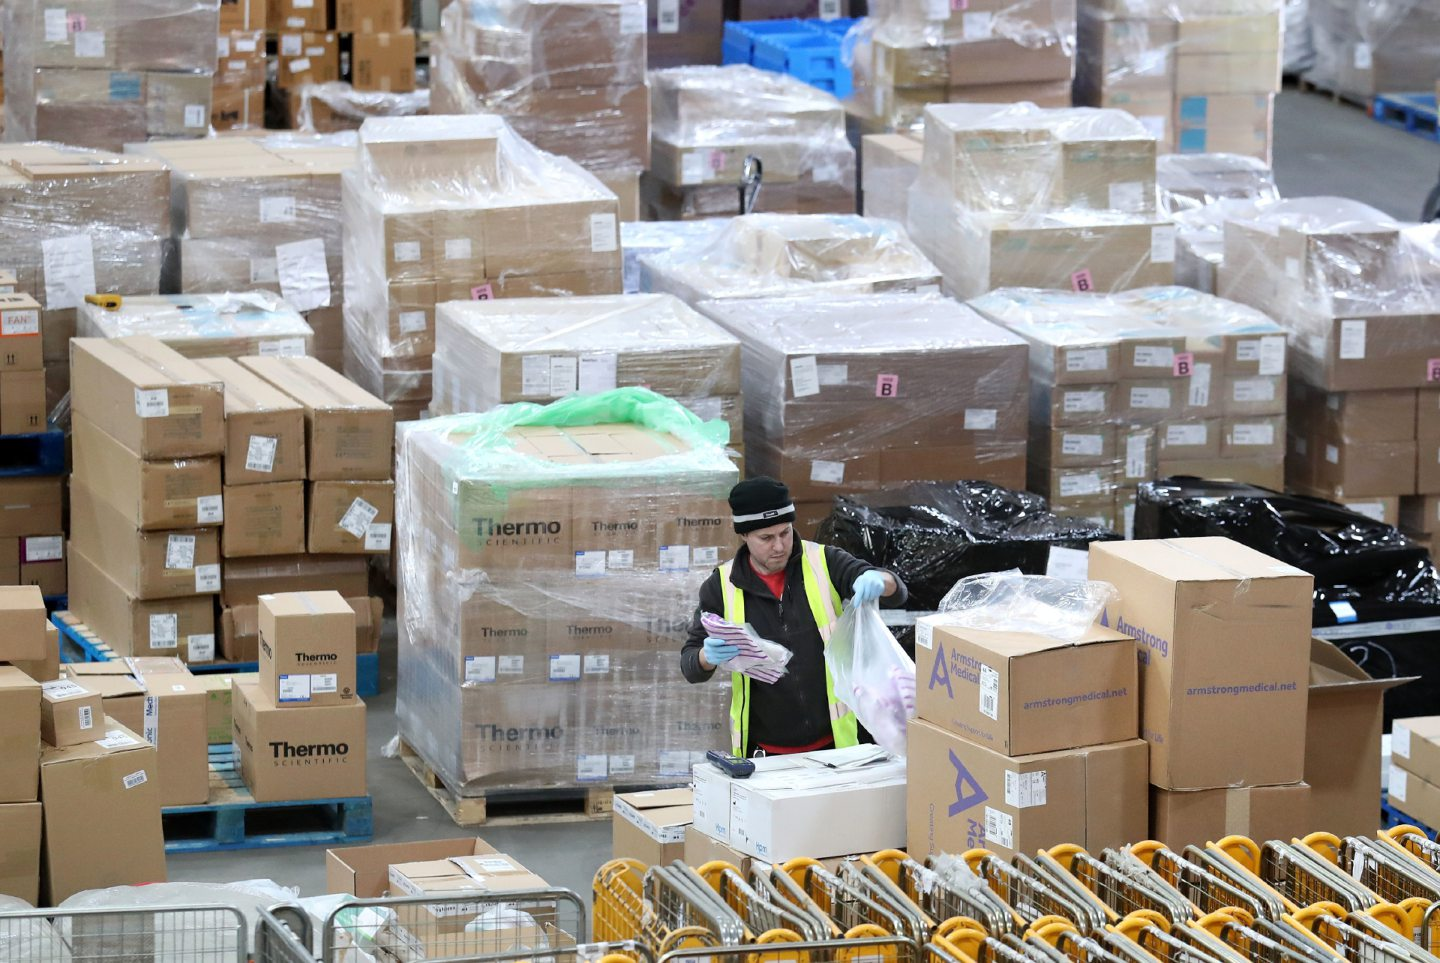 A worker gather supplies at the NHS' National Procurement Warehouse at Canderside, Larkhall.